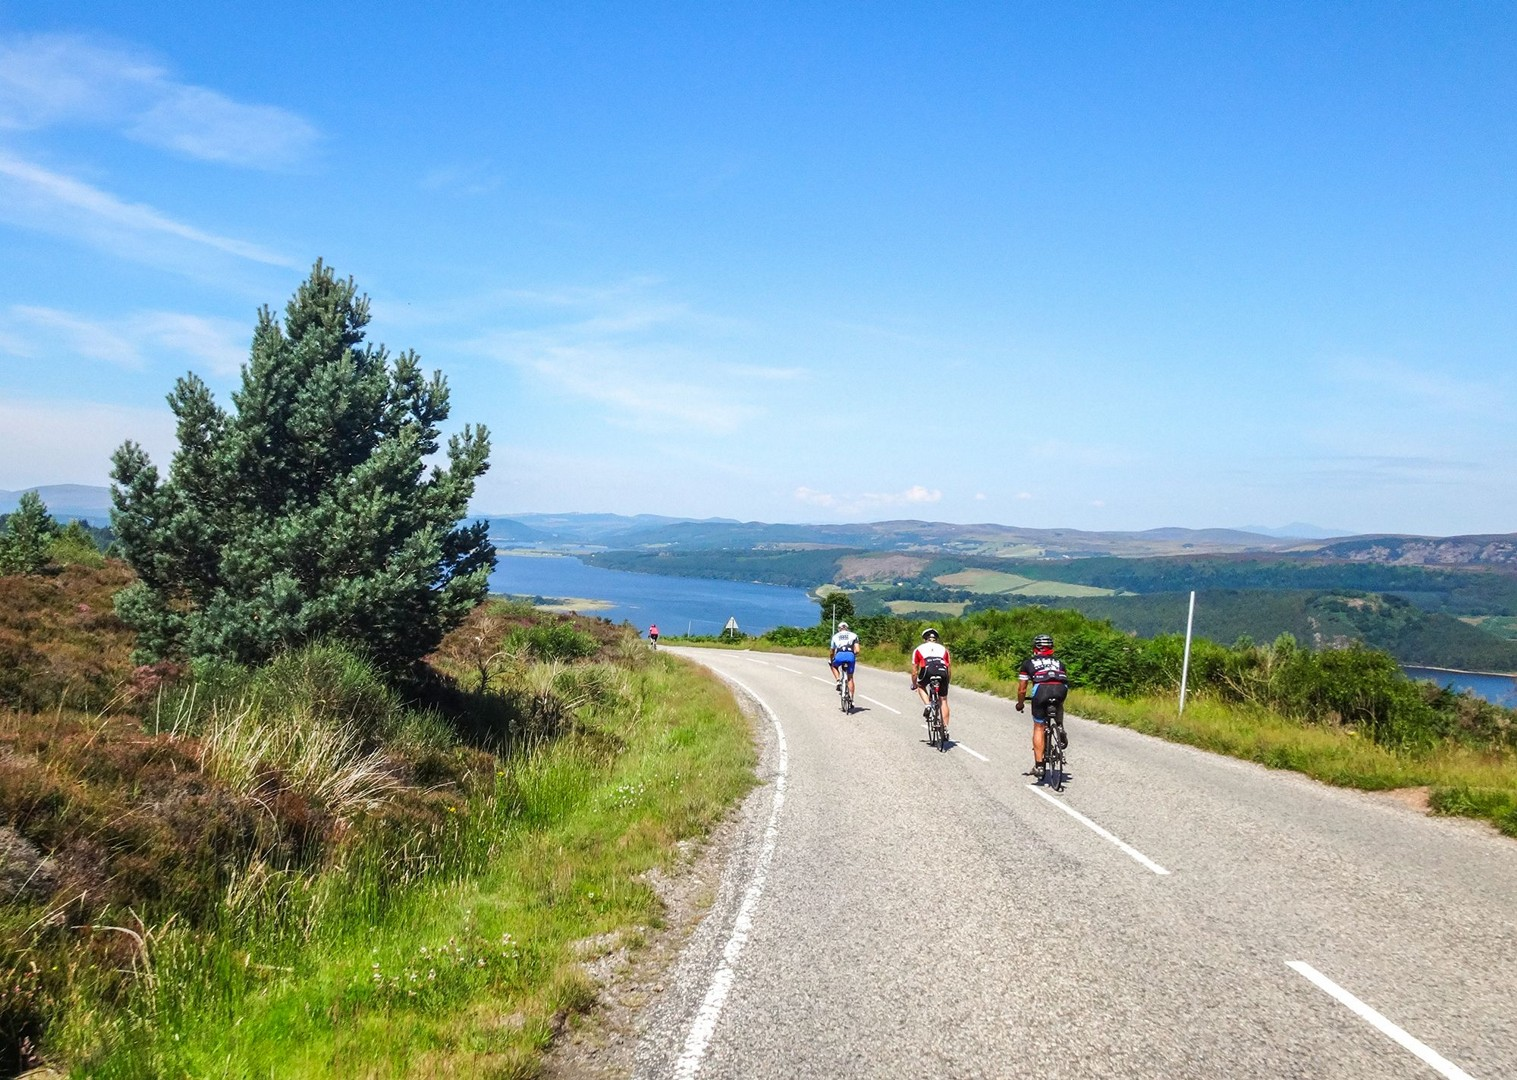 uk-lands-end-to-john-ogroats-explorer-trip-guided-cycling-holiday.jpg - UK - Land's End to John O'Groats Explorer (22 days) - Guided Cycling Holiday - Leisure Cycling